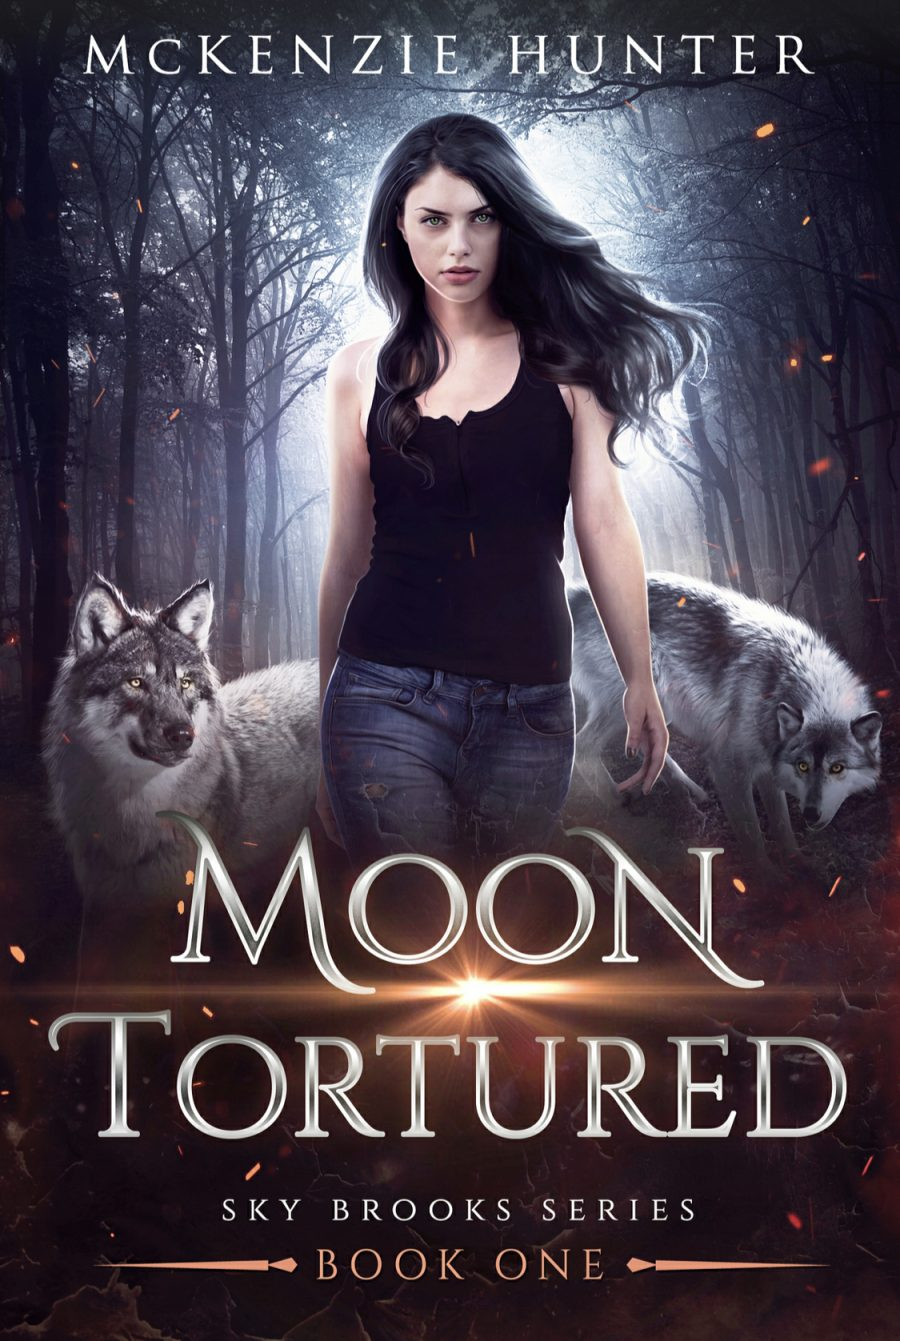 Moon Tortured (Sky Brooks - Book 1) by McKenzie Hunter - A Book Review #BookReview #UrbanFantasy #3Stars #SeriesComplete #Shifters #KindleUnlimited #KU #OlderSeries